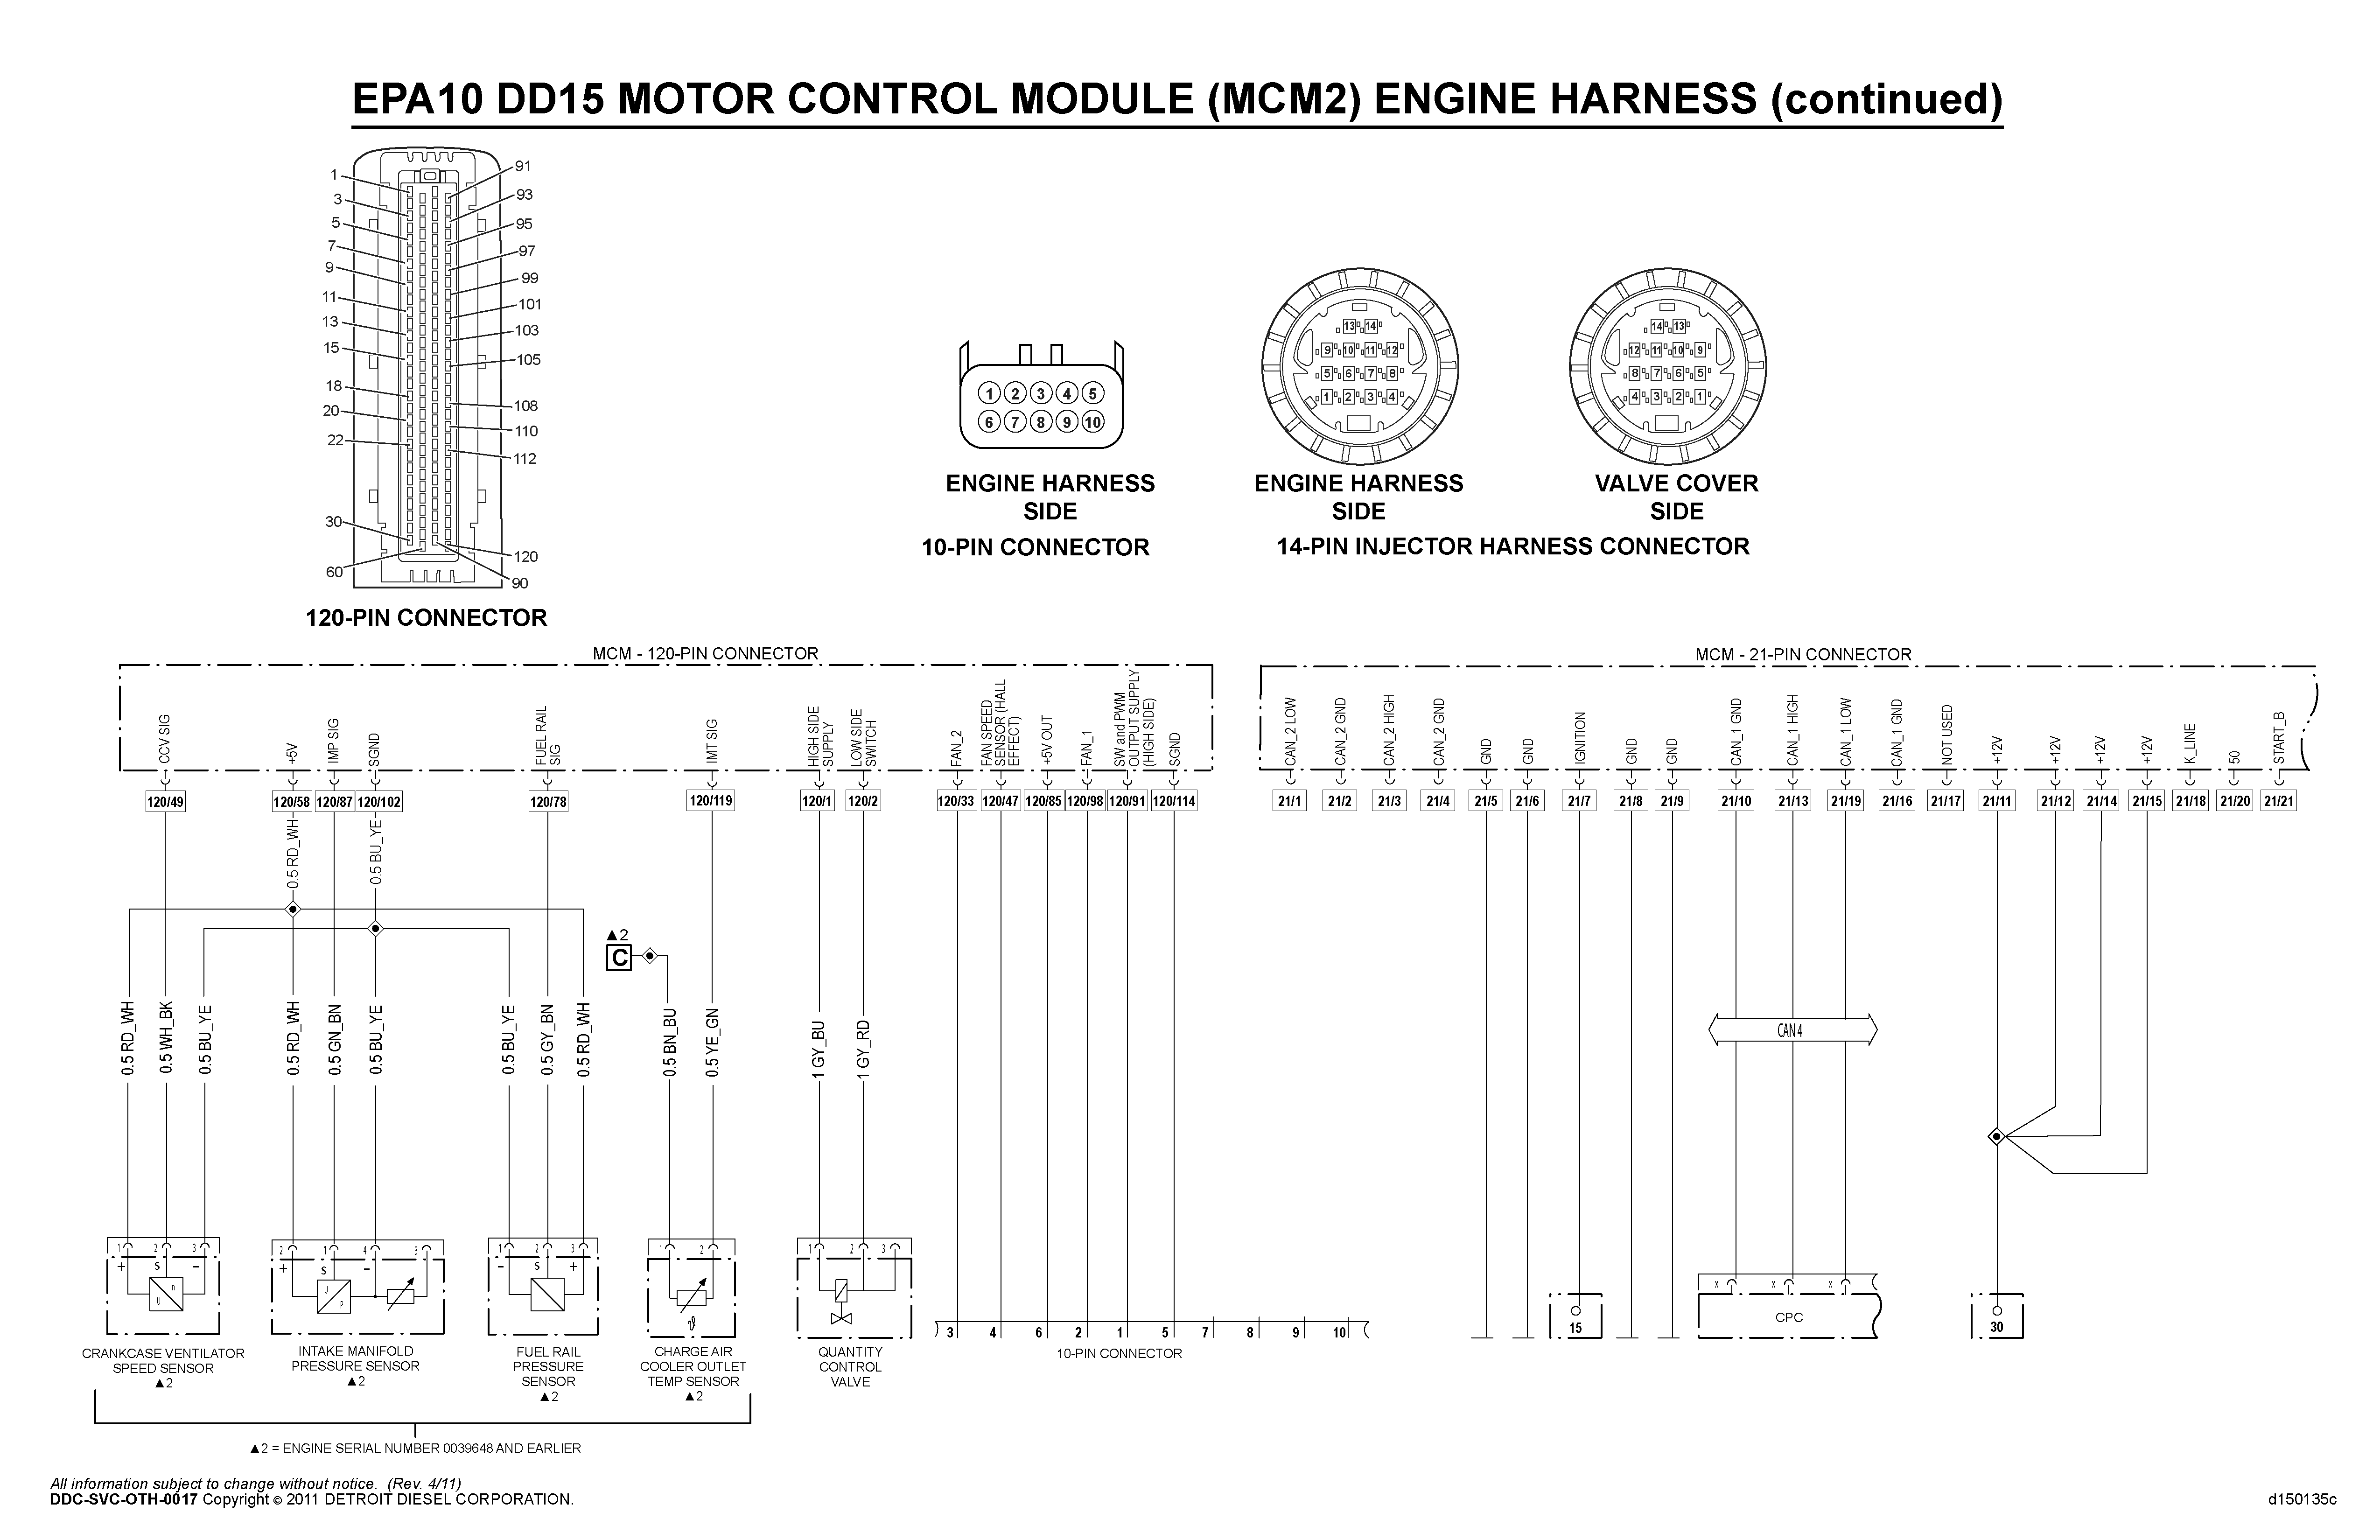 EPA10 DD15 MCM WIRING DIAGRAM PART 2 mcm wiring diagram wiring color coding \u2022 wiring diagrams j Badlands Illuminator FXSTS Wiring-Diagram at panicattacktreatment.co